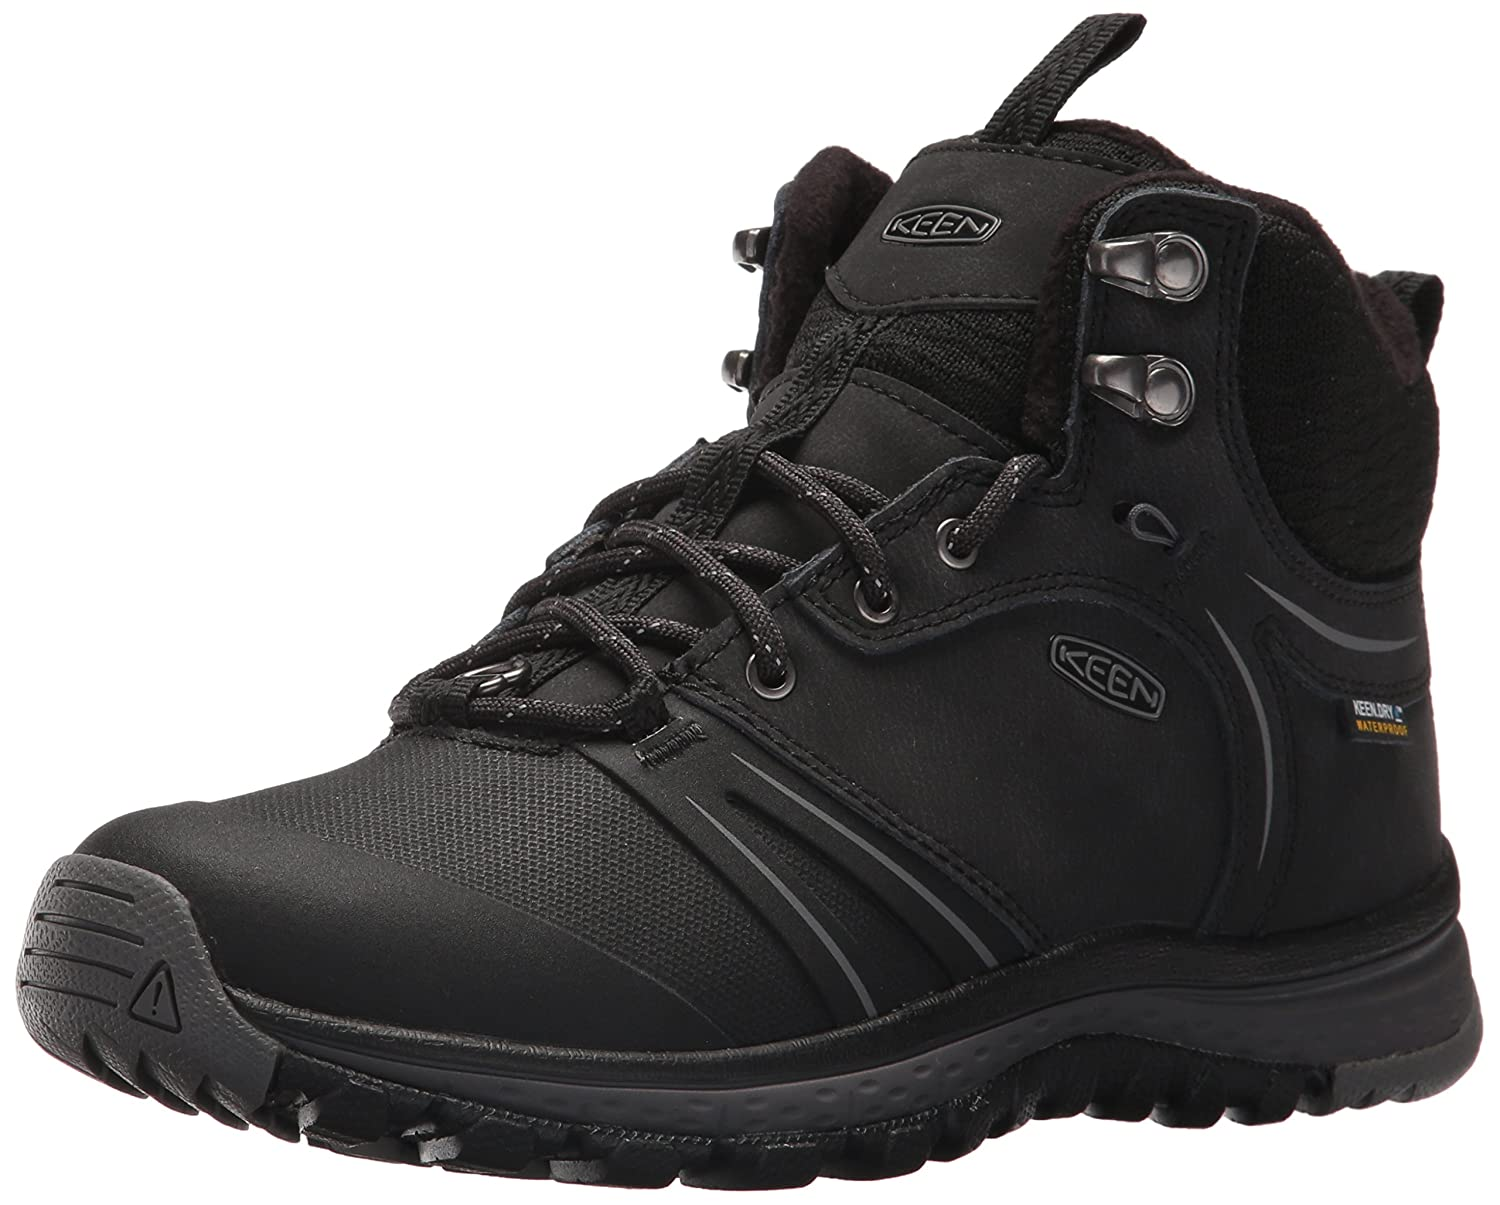 KEEN Women's Terradora Wintershell-w Hiking Shoe B01MYO7VC1 11 B(M) US|Black/Magnet